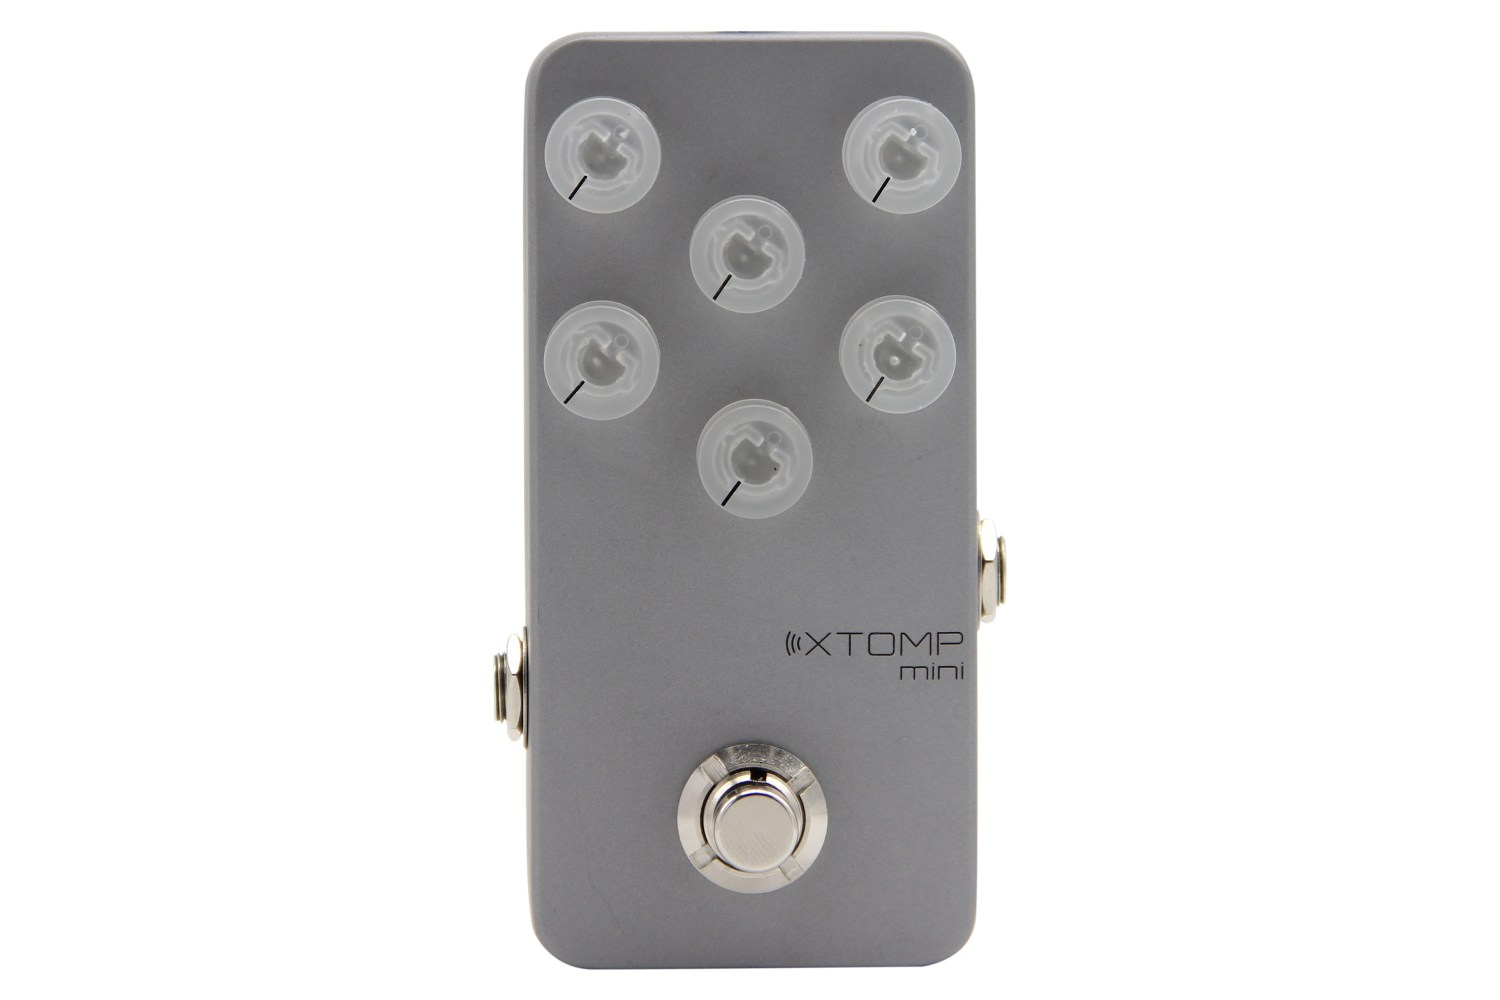 Hotone Audio XTOMP Mini Pedal